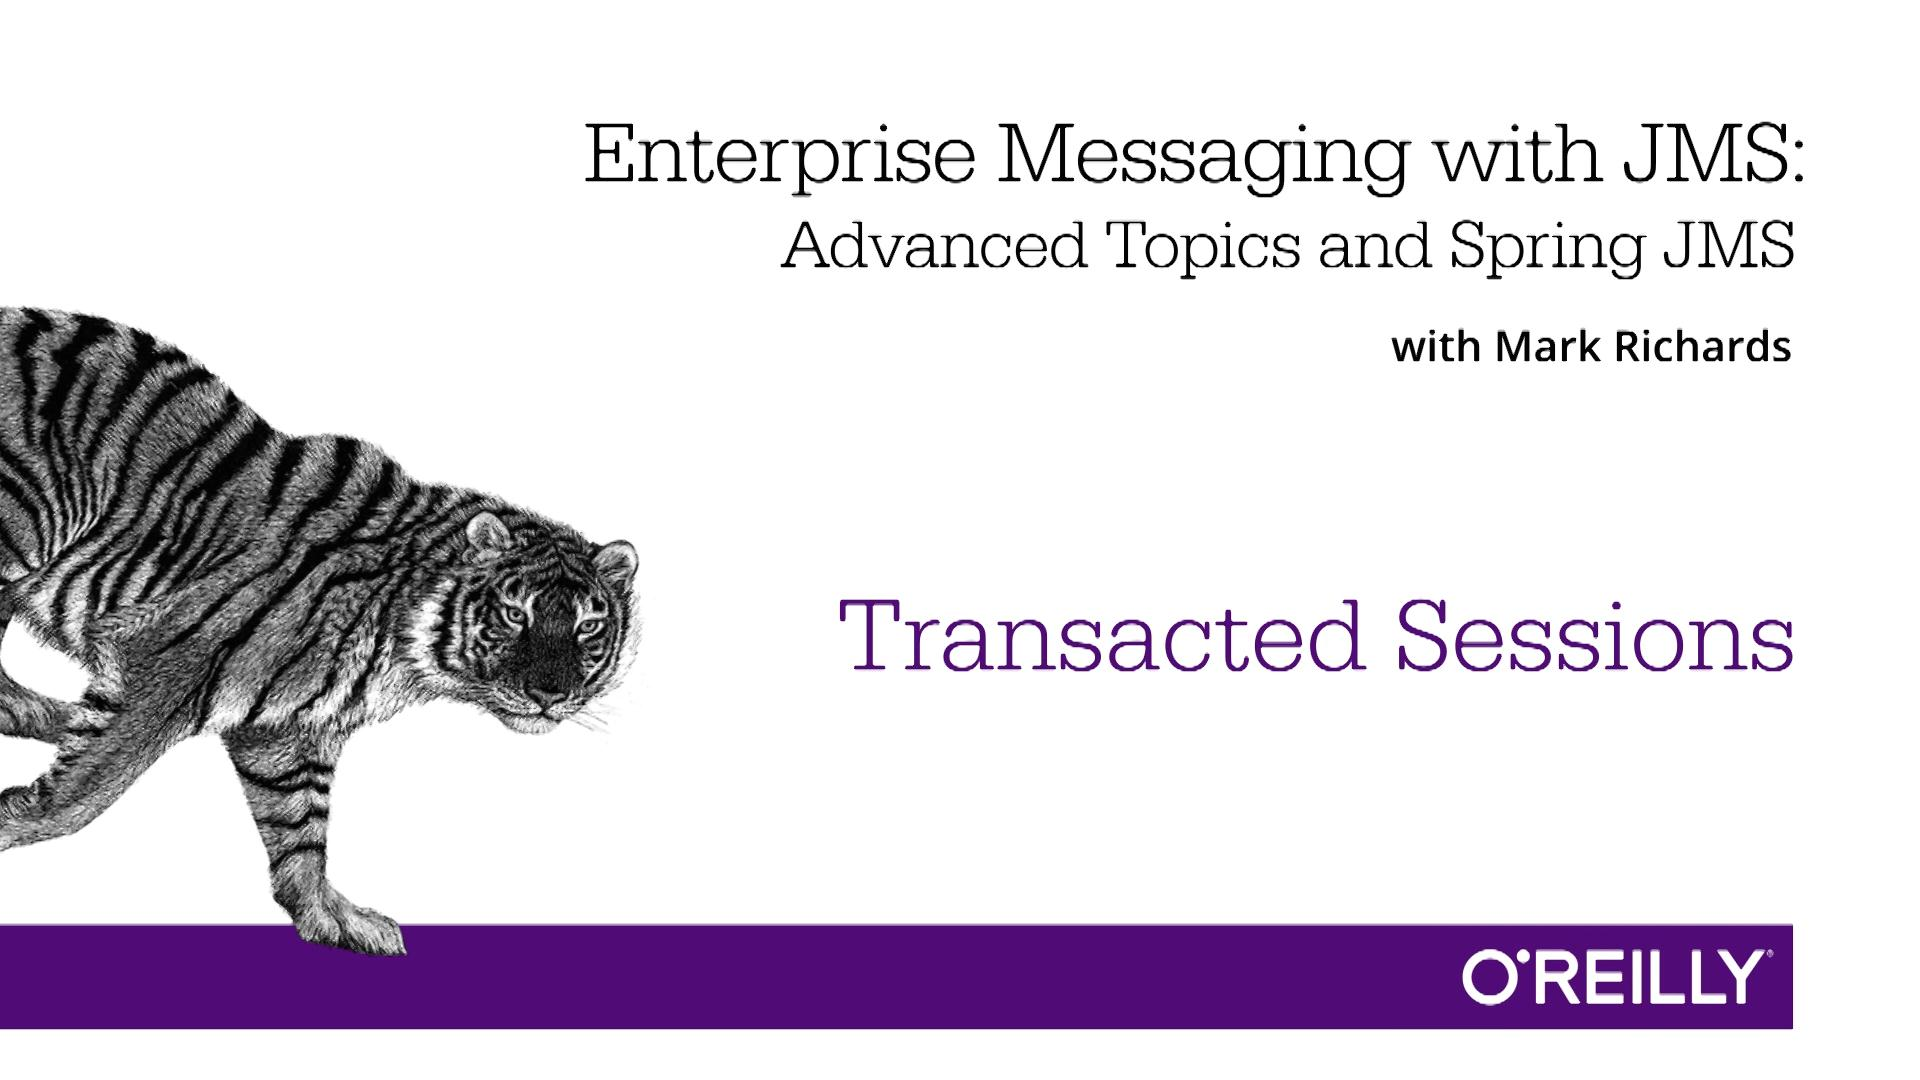 Enterprise Messaging with JMS: Advanced Topics and Spring JMS